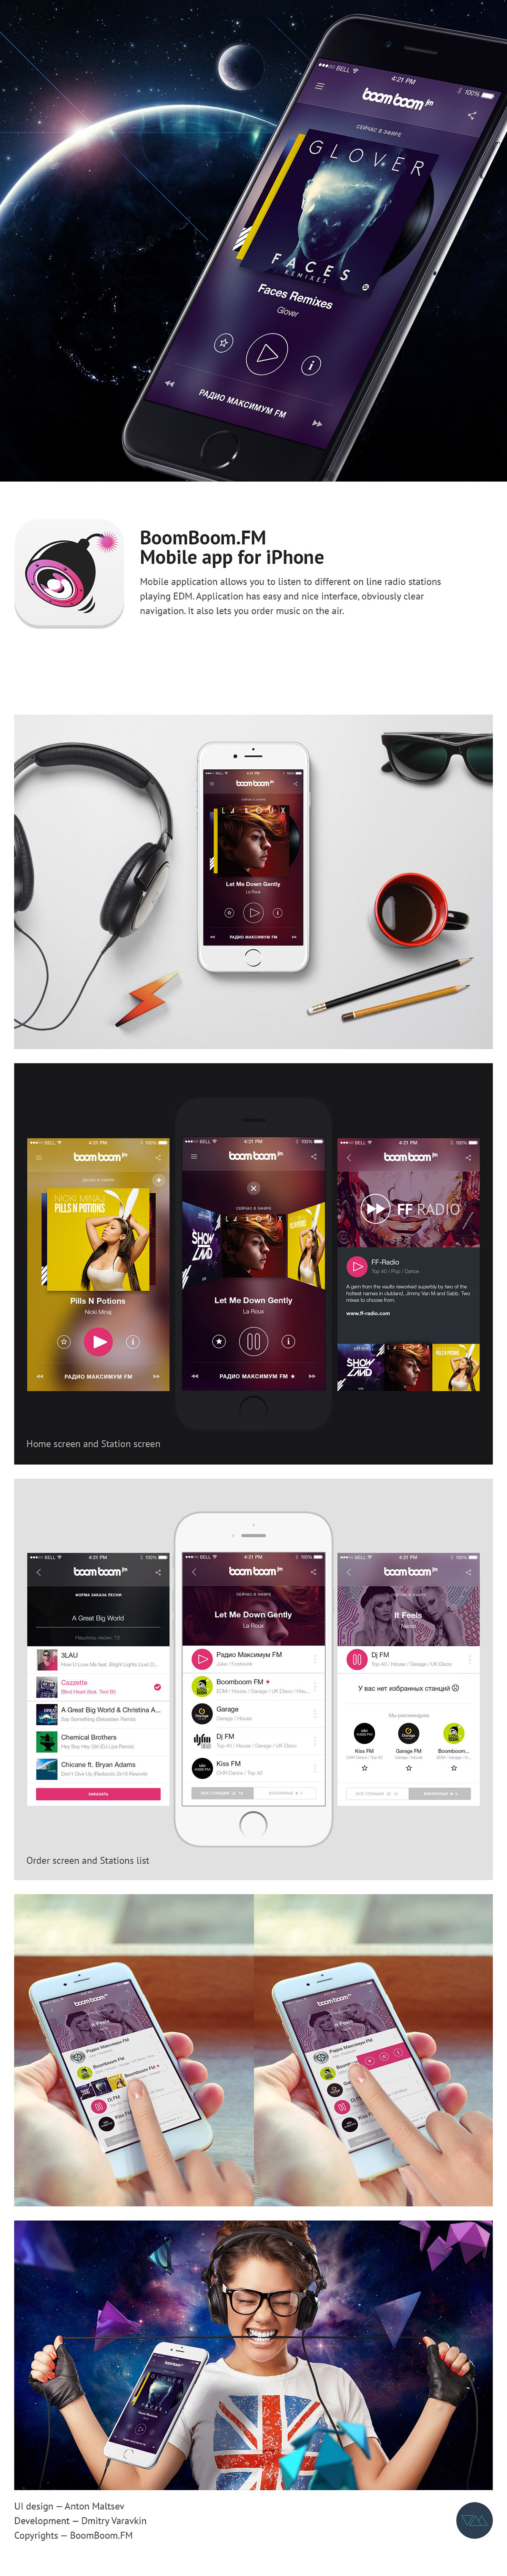 Mobile app user interface Radio user experience iphone